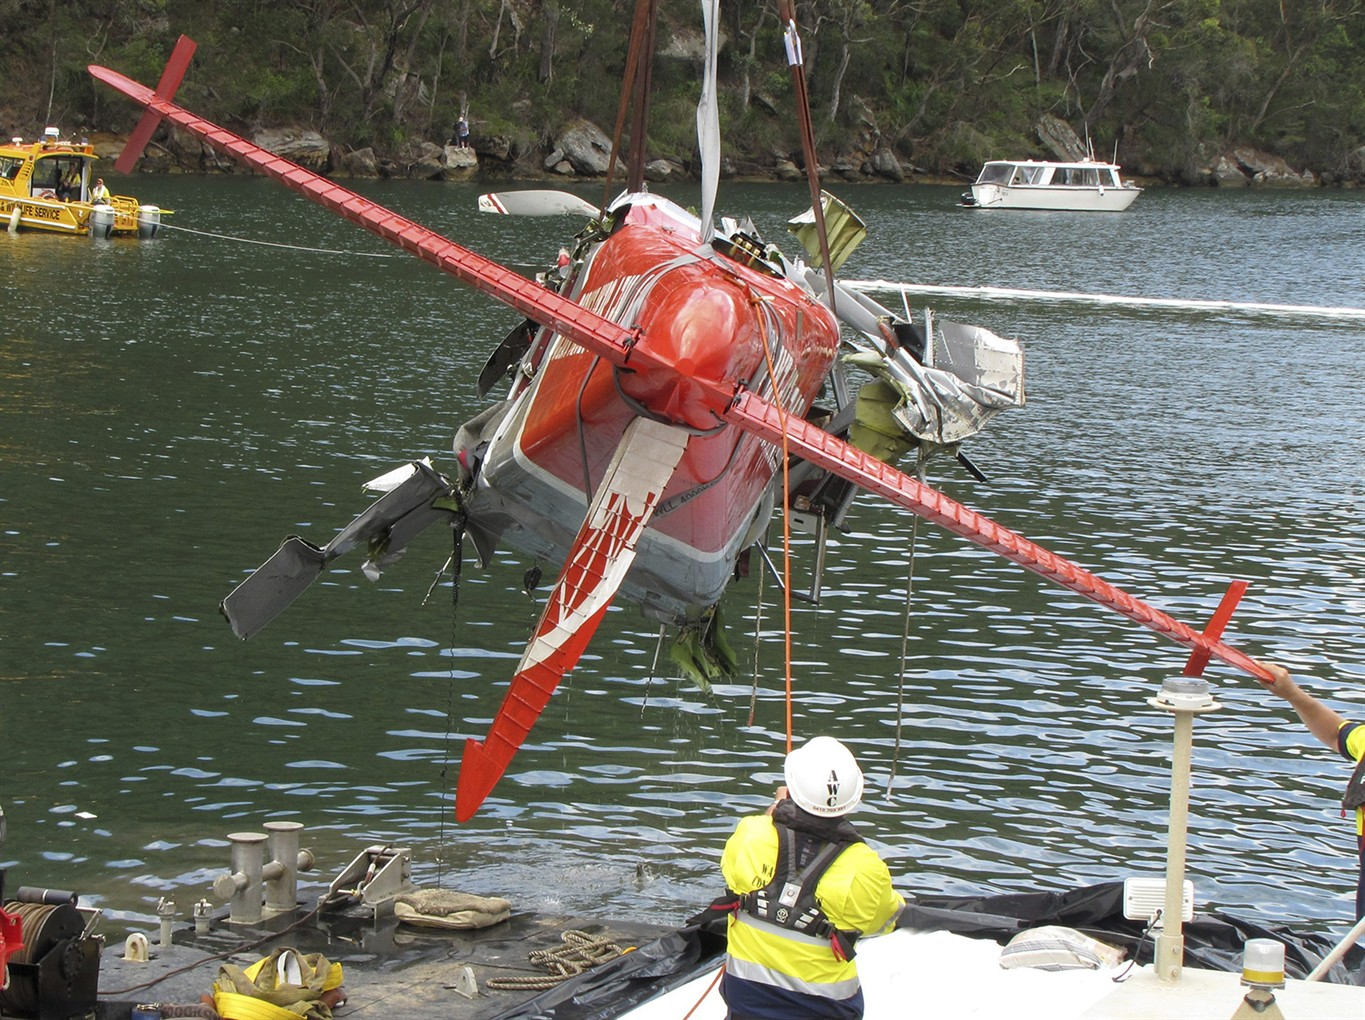 Sydney seaplane not on expected flight path before fatal crash